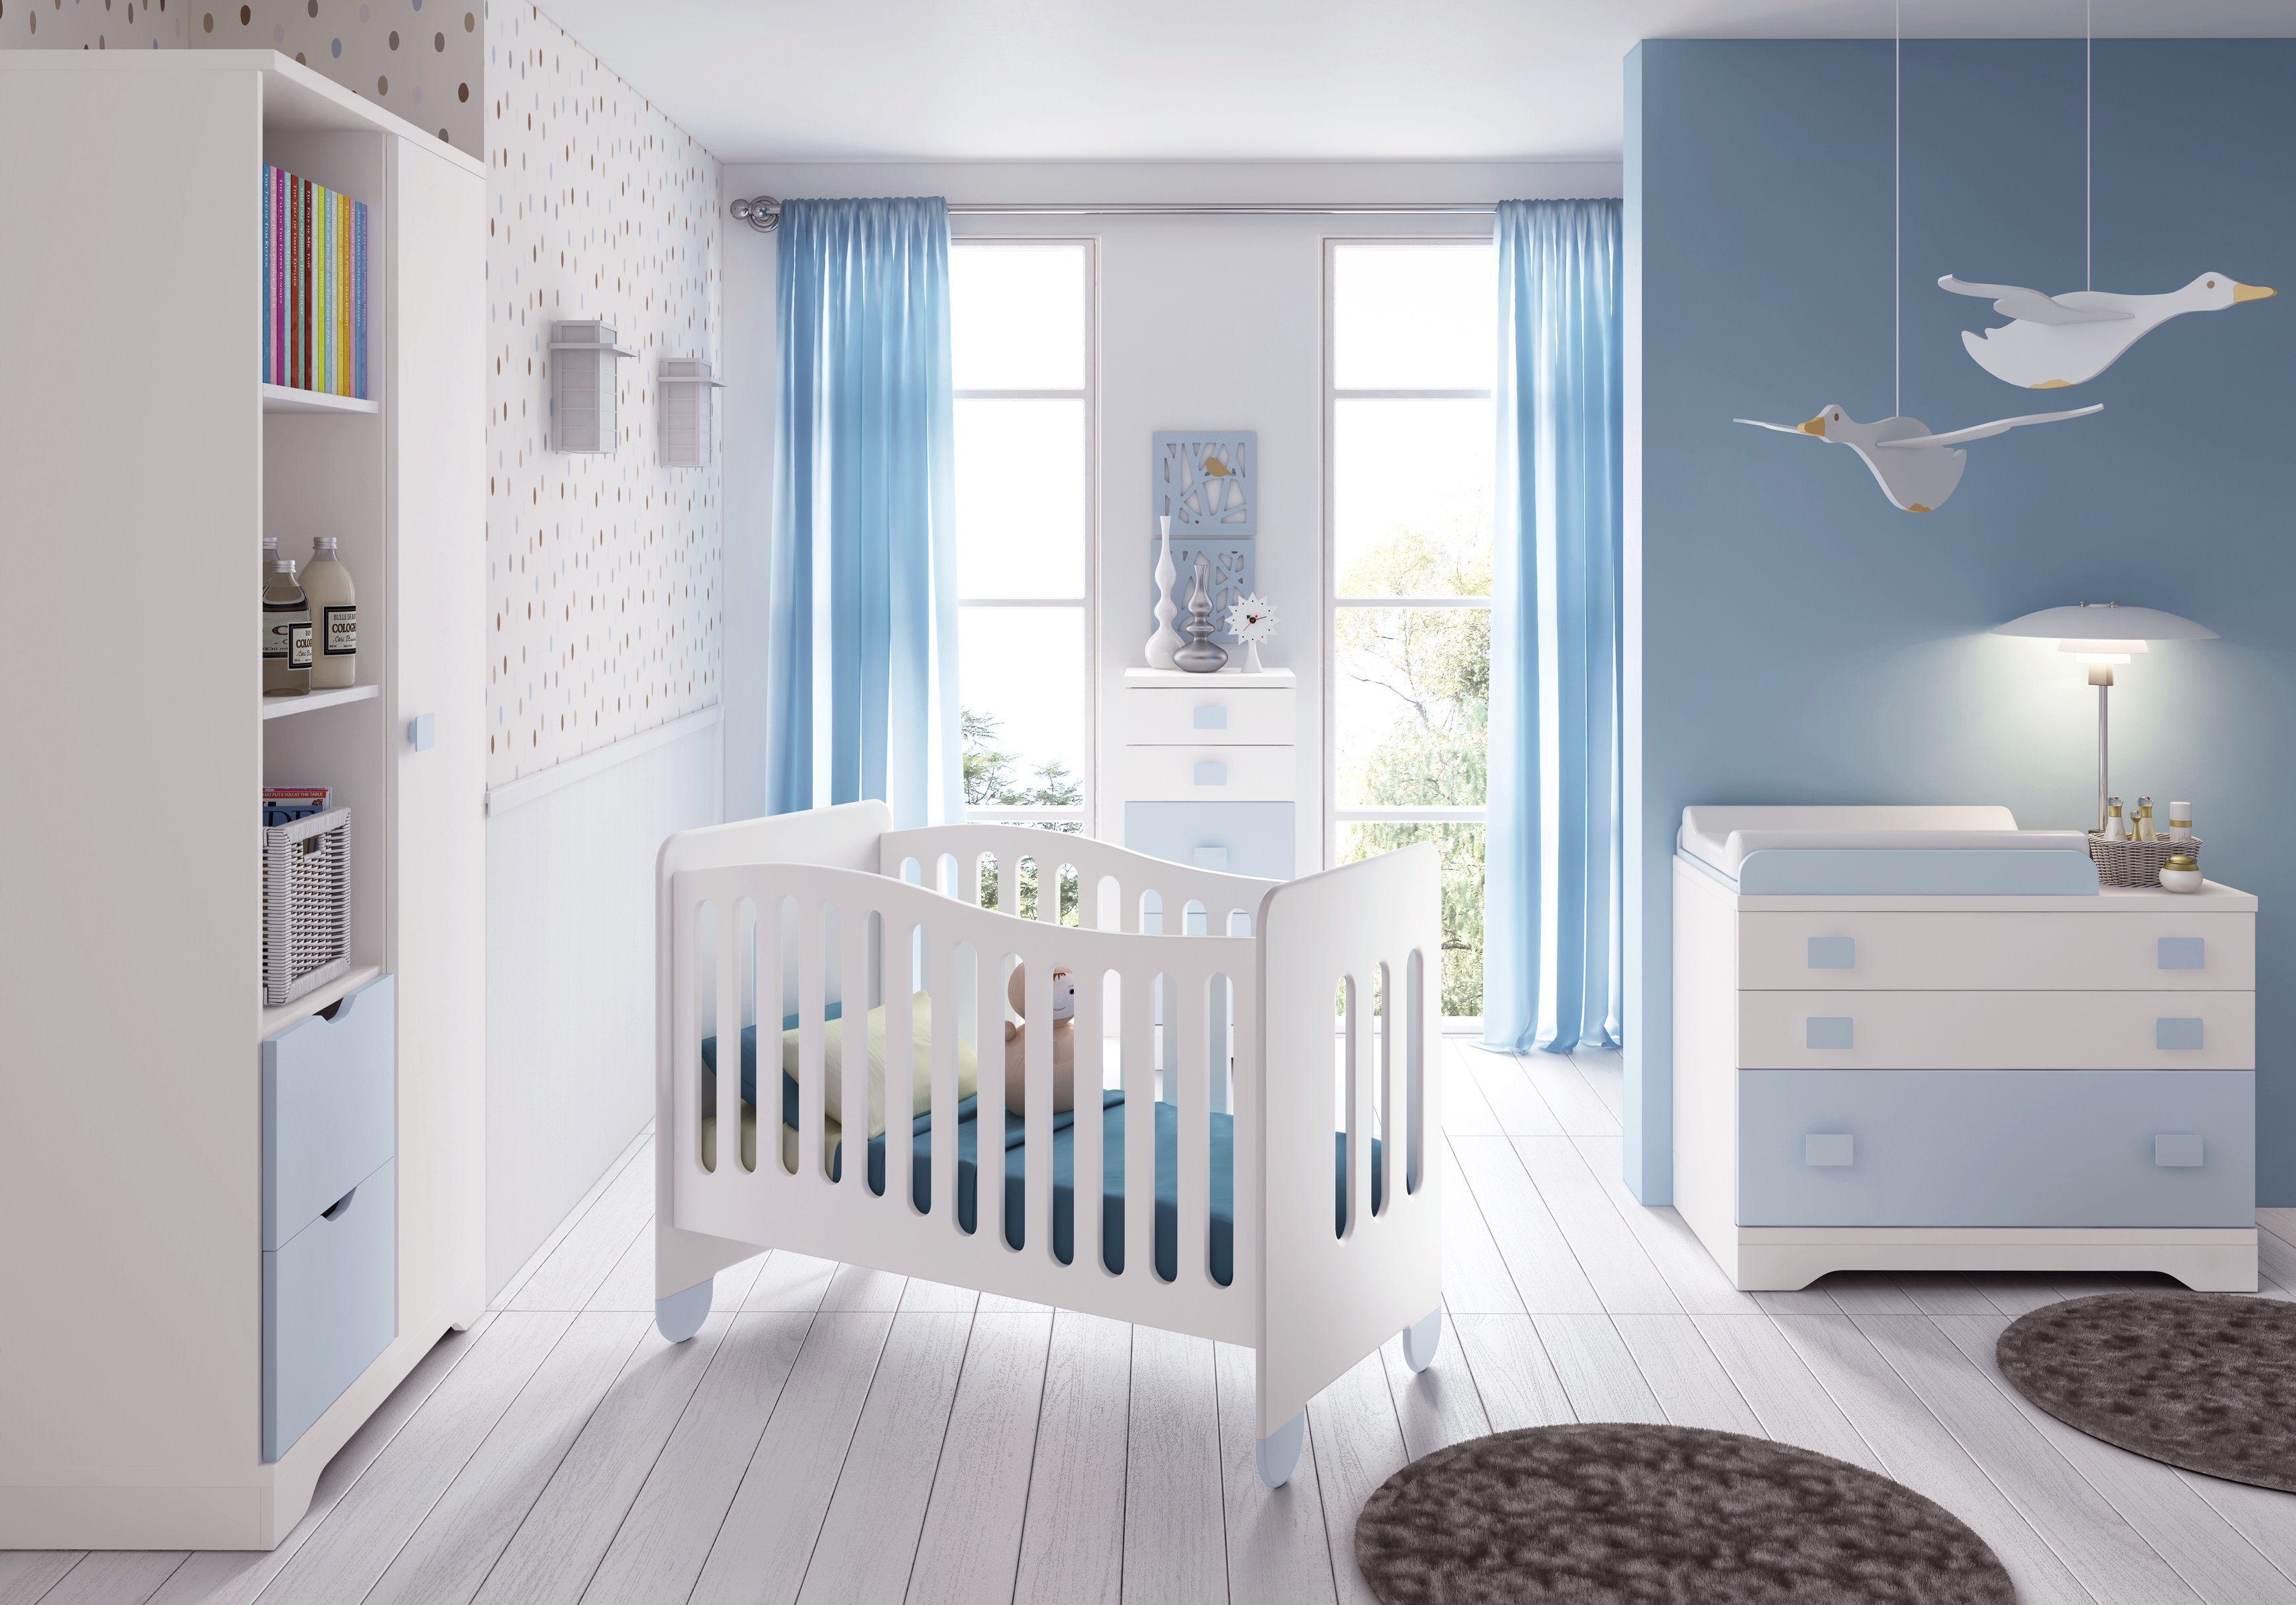 Chambre b b gar on compl te gioco blanc et bleu for Collection chambre bebe garcon